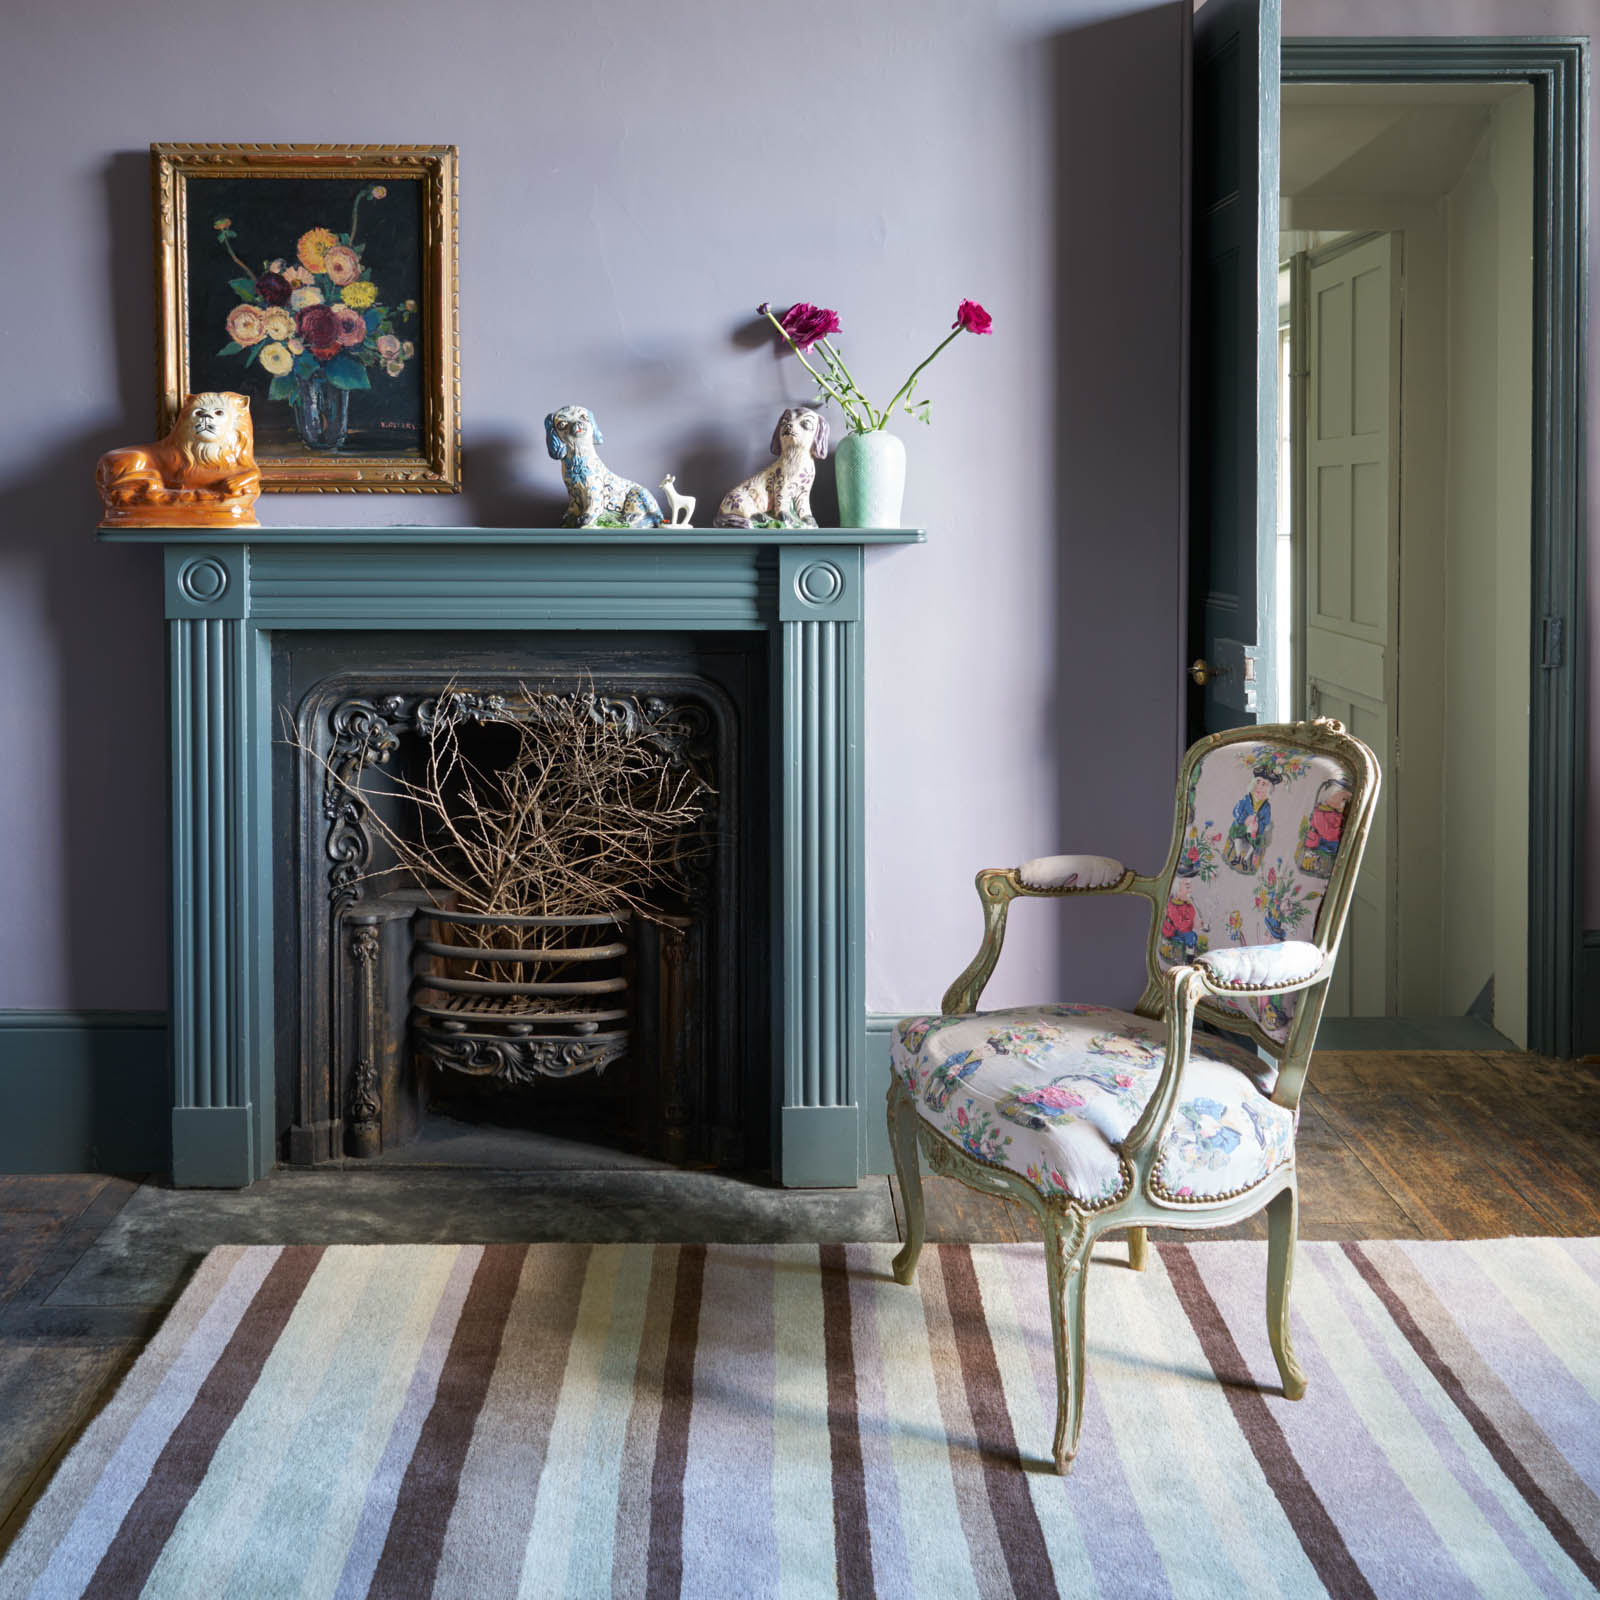 Ainslie Striped Rugs AIN02 in Mauve